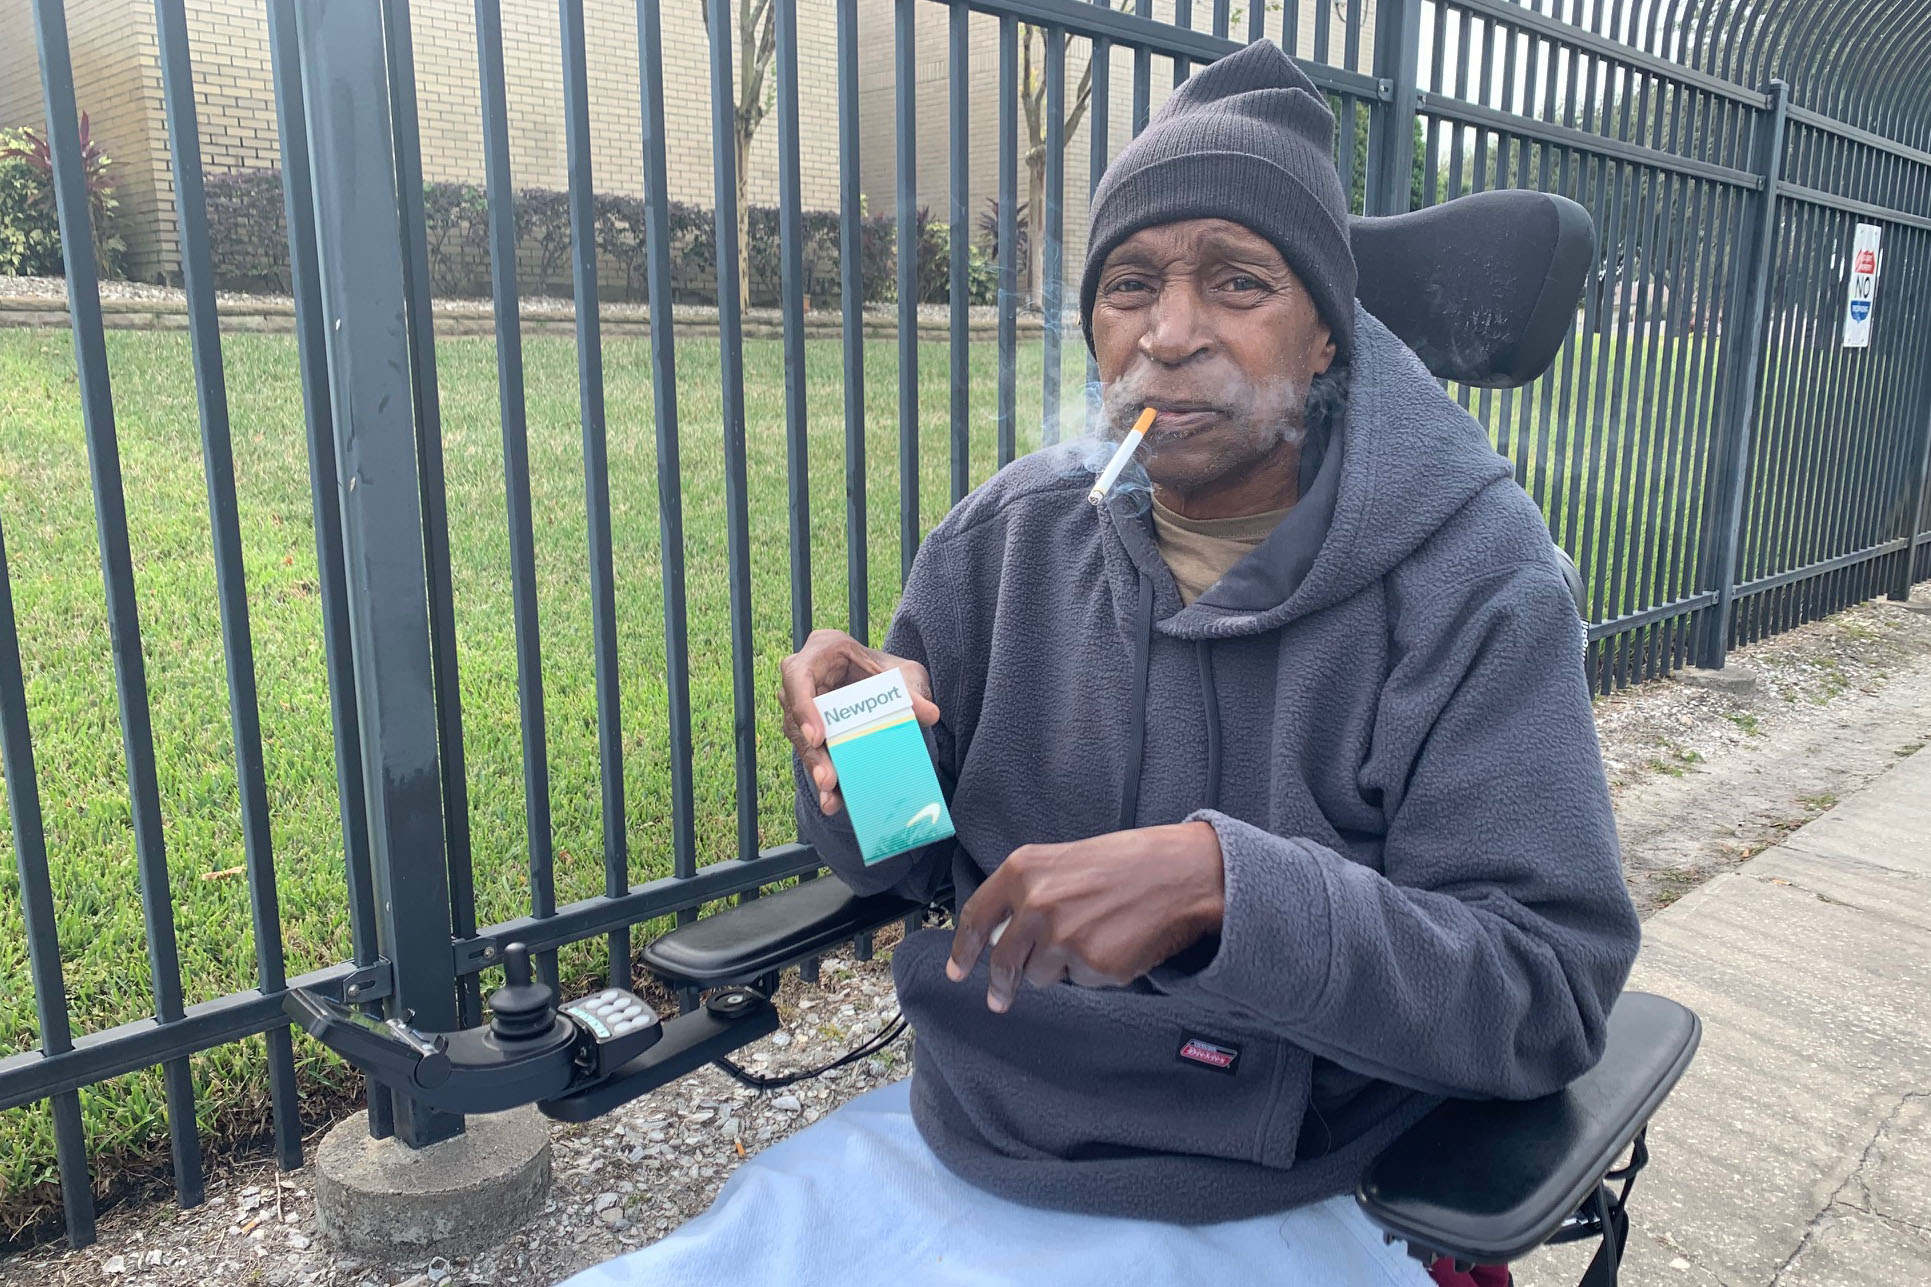 Air Force veteran Ronald West, 70, said he leaves his hospital room several times a day to smoke outside the Tampa VA property.